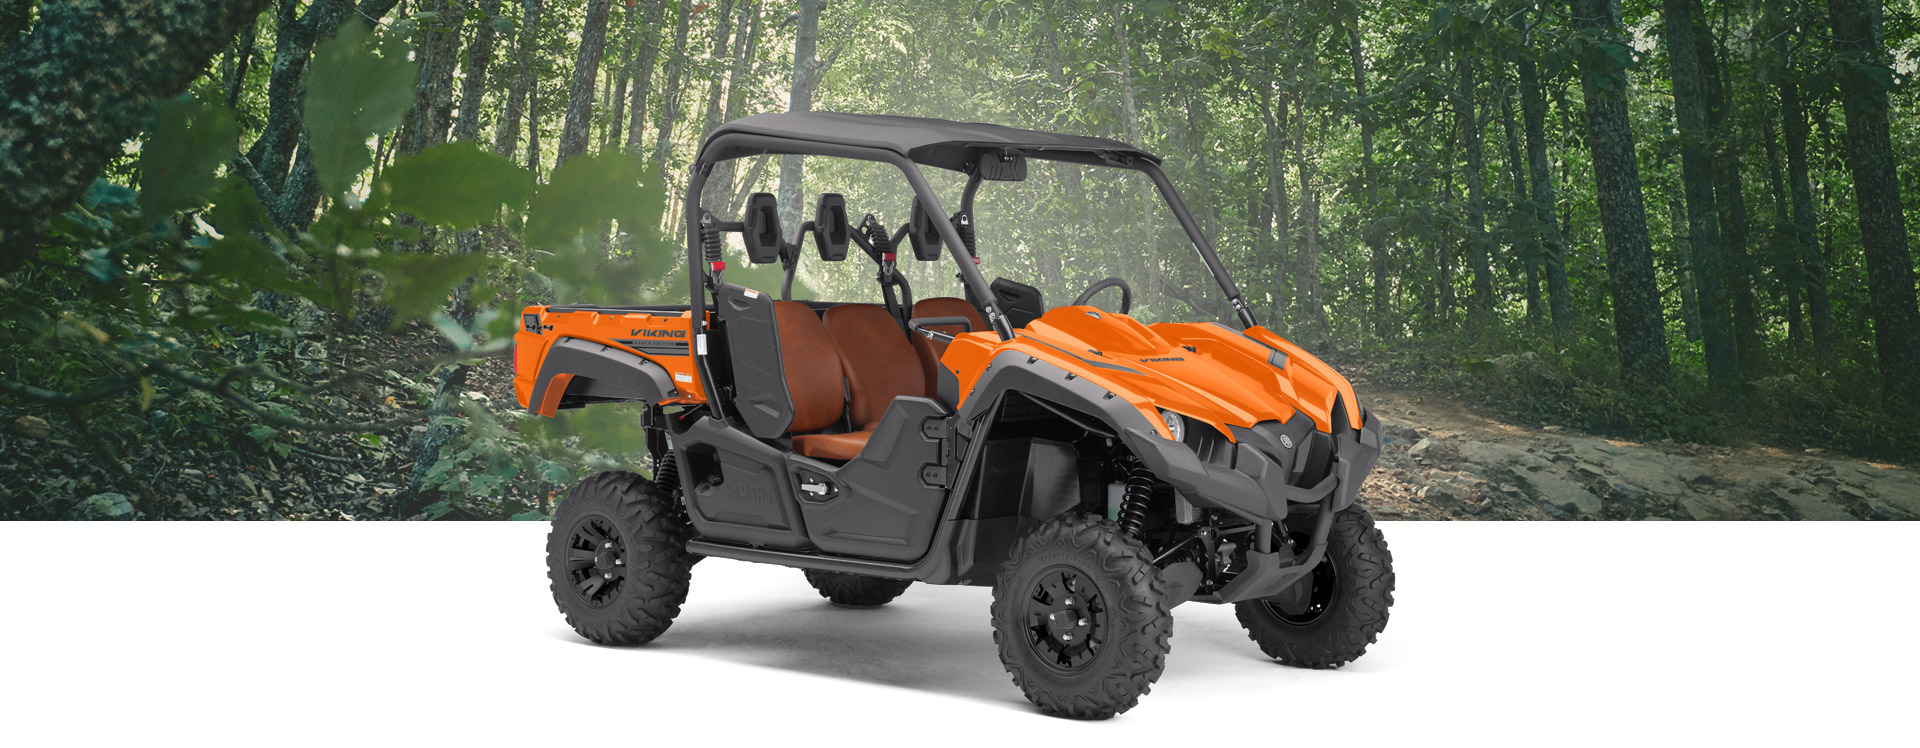 2020 Yamaha Viking-Eps-Ranch-Edition